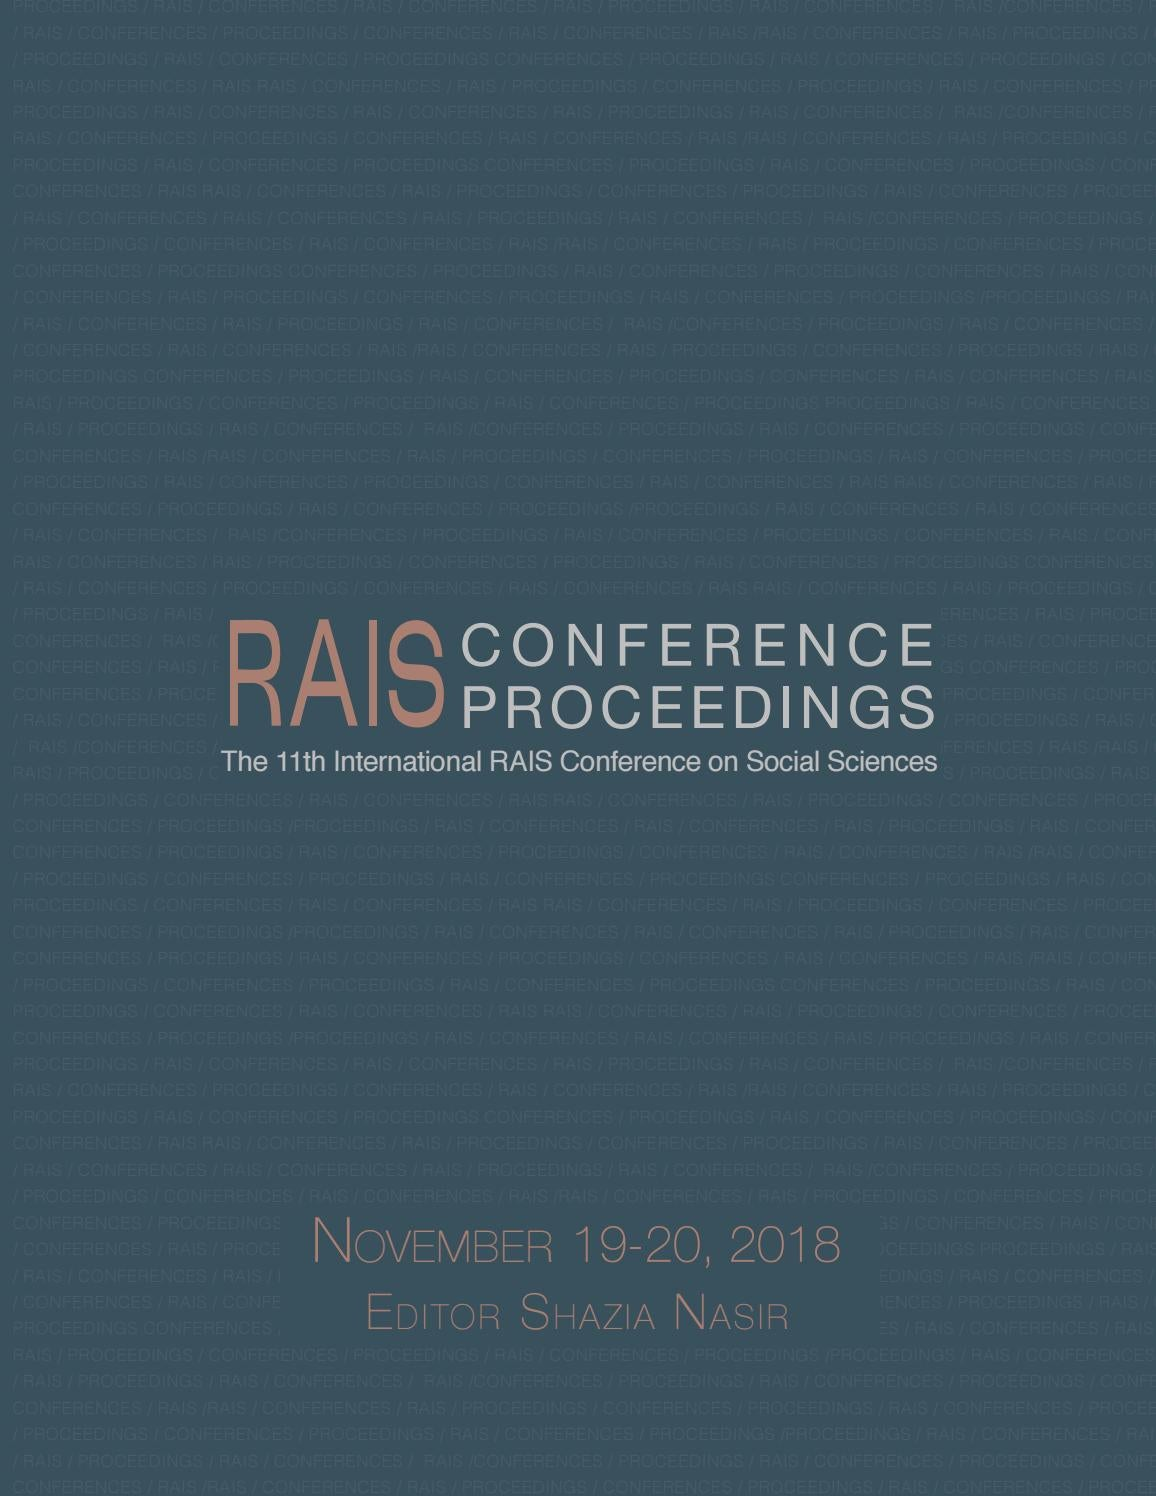 Proceedings of the 11th International RAIS Conference on